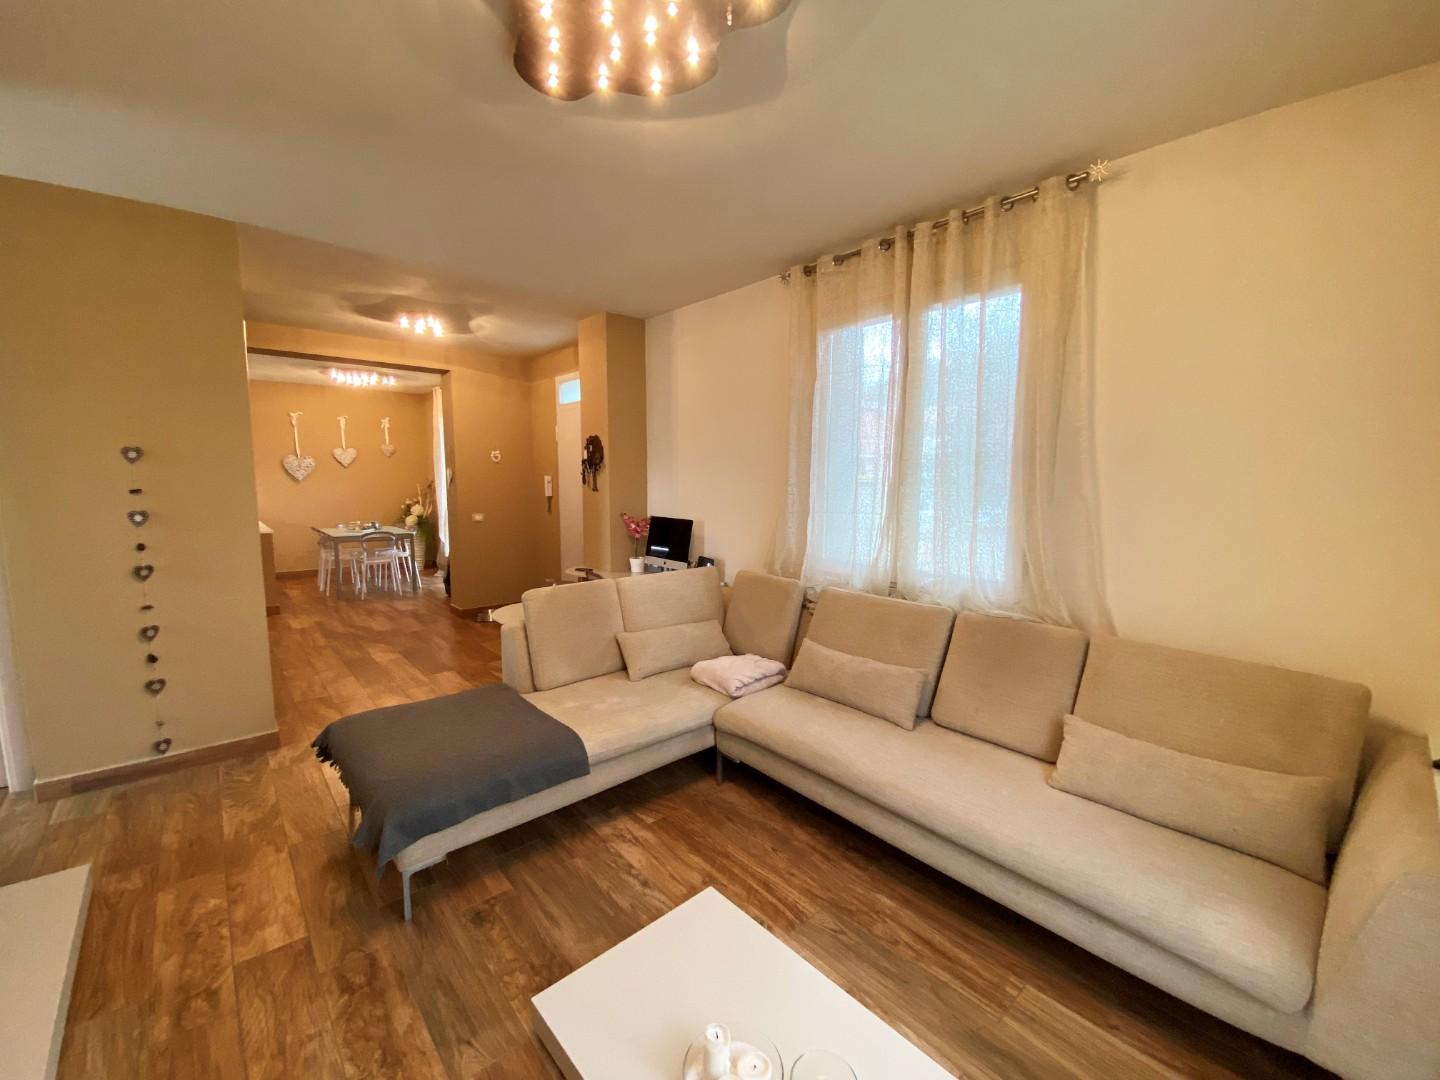 Semi-detached house for sale, ref. S258